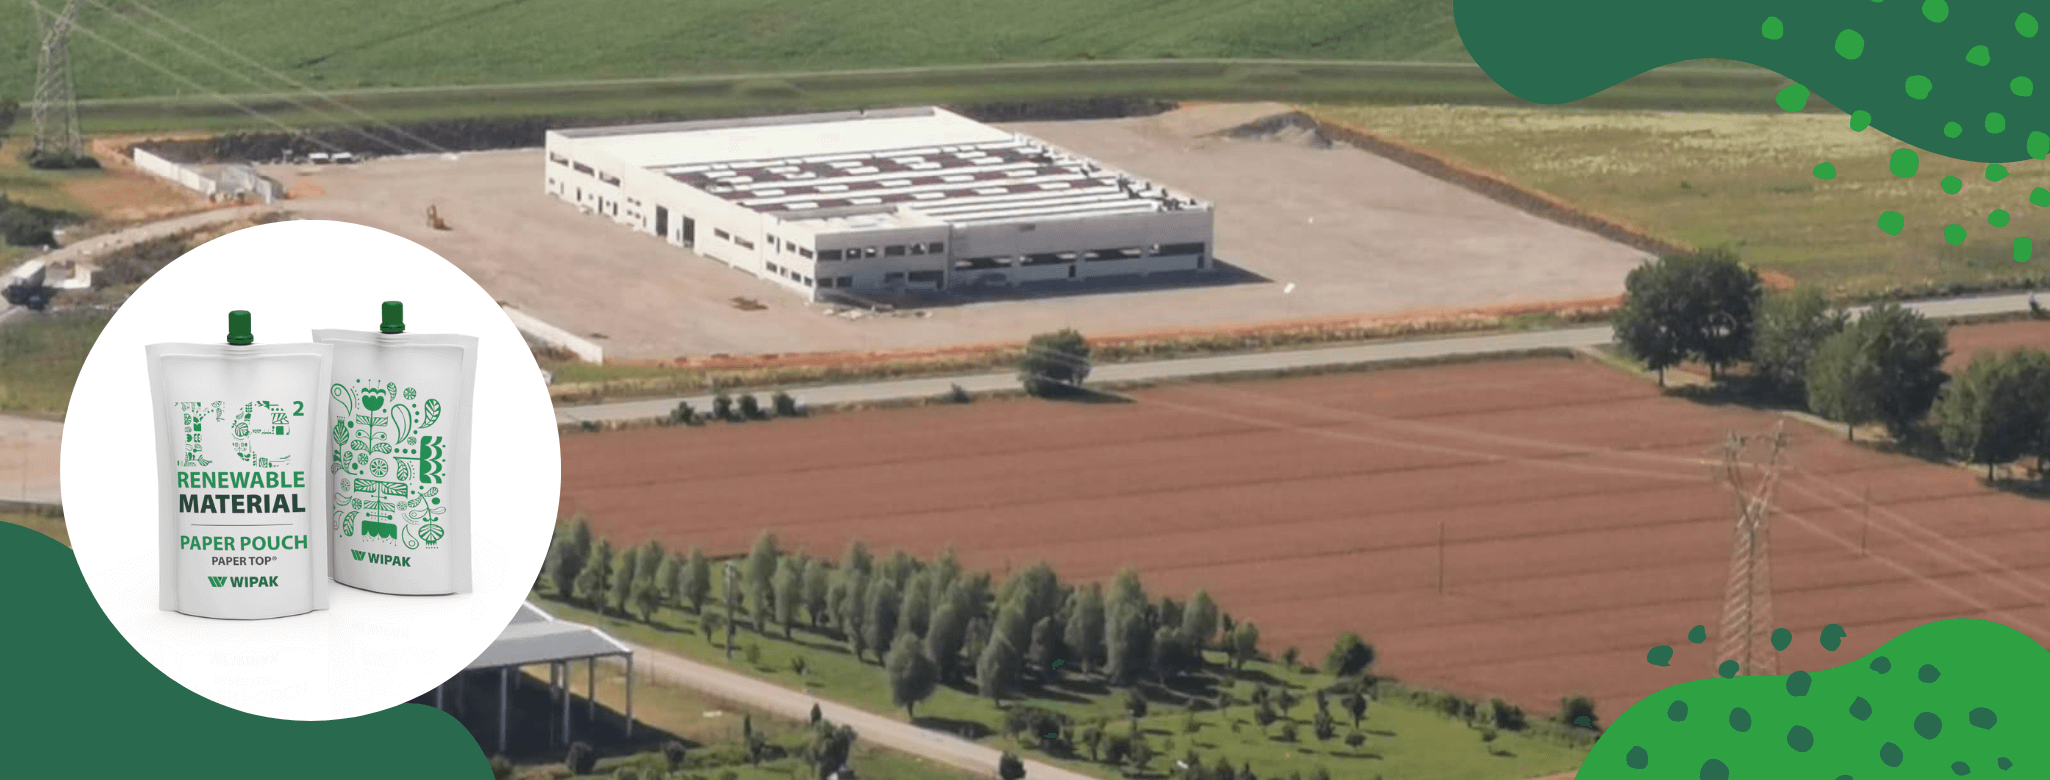 Wipak Bordi plant is getting an extension